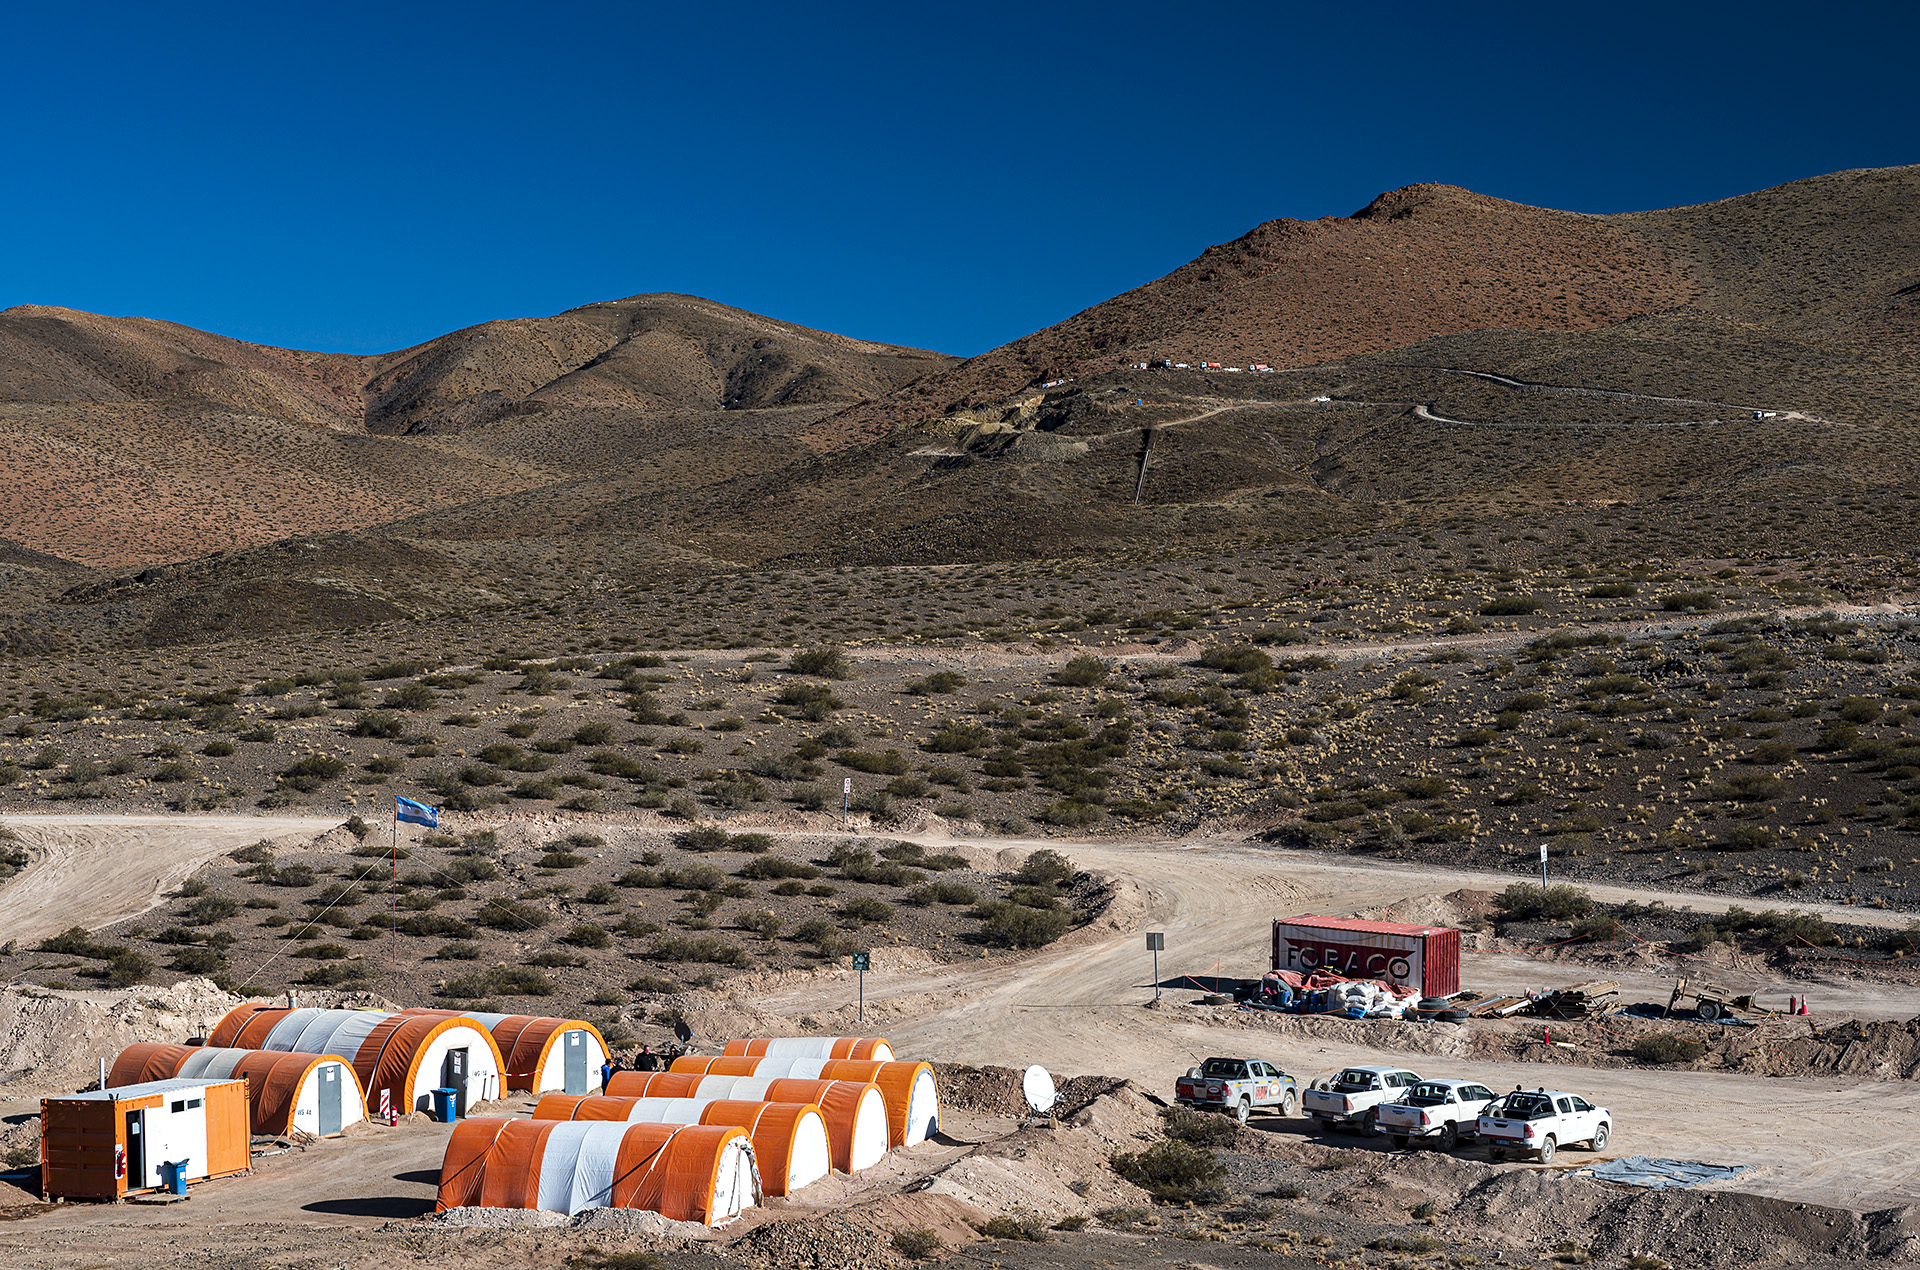 Figure 1 - San Francisco Project area: temporary company camp in foreground and drill rigs at the San Francisco del Los Andes breccia pipe in background. The project is located in an arid, sparsely populated area at an elevation of ~2600m. The camp is located 20km by unsealed road to the nearest public road and the state power grid.